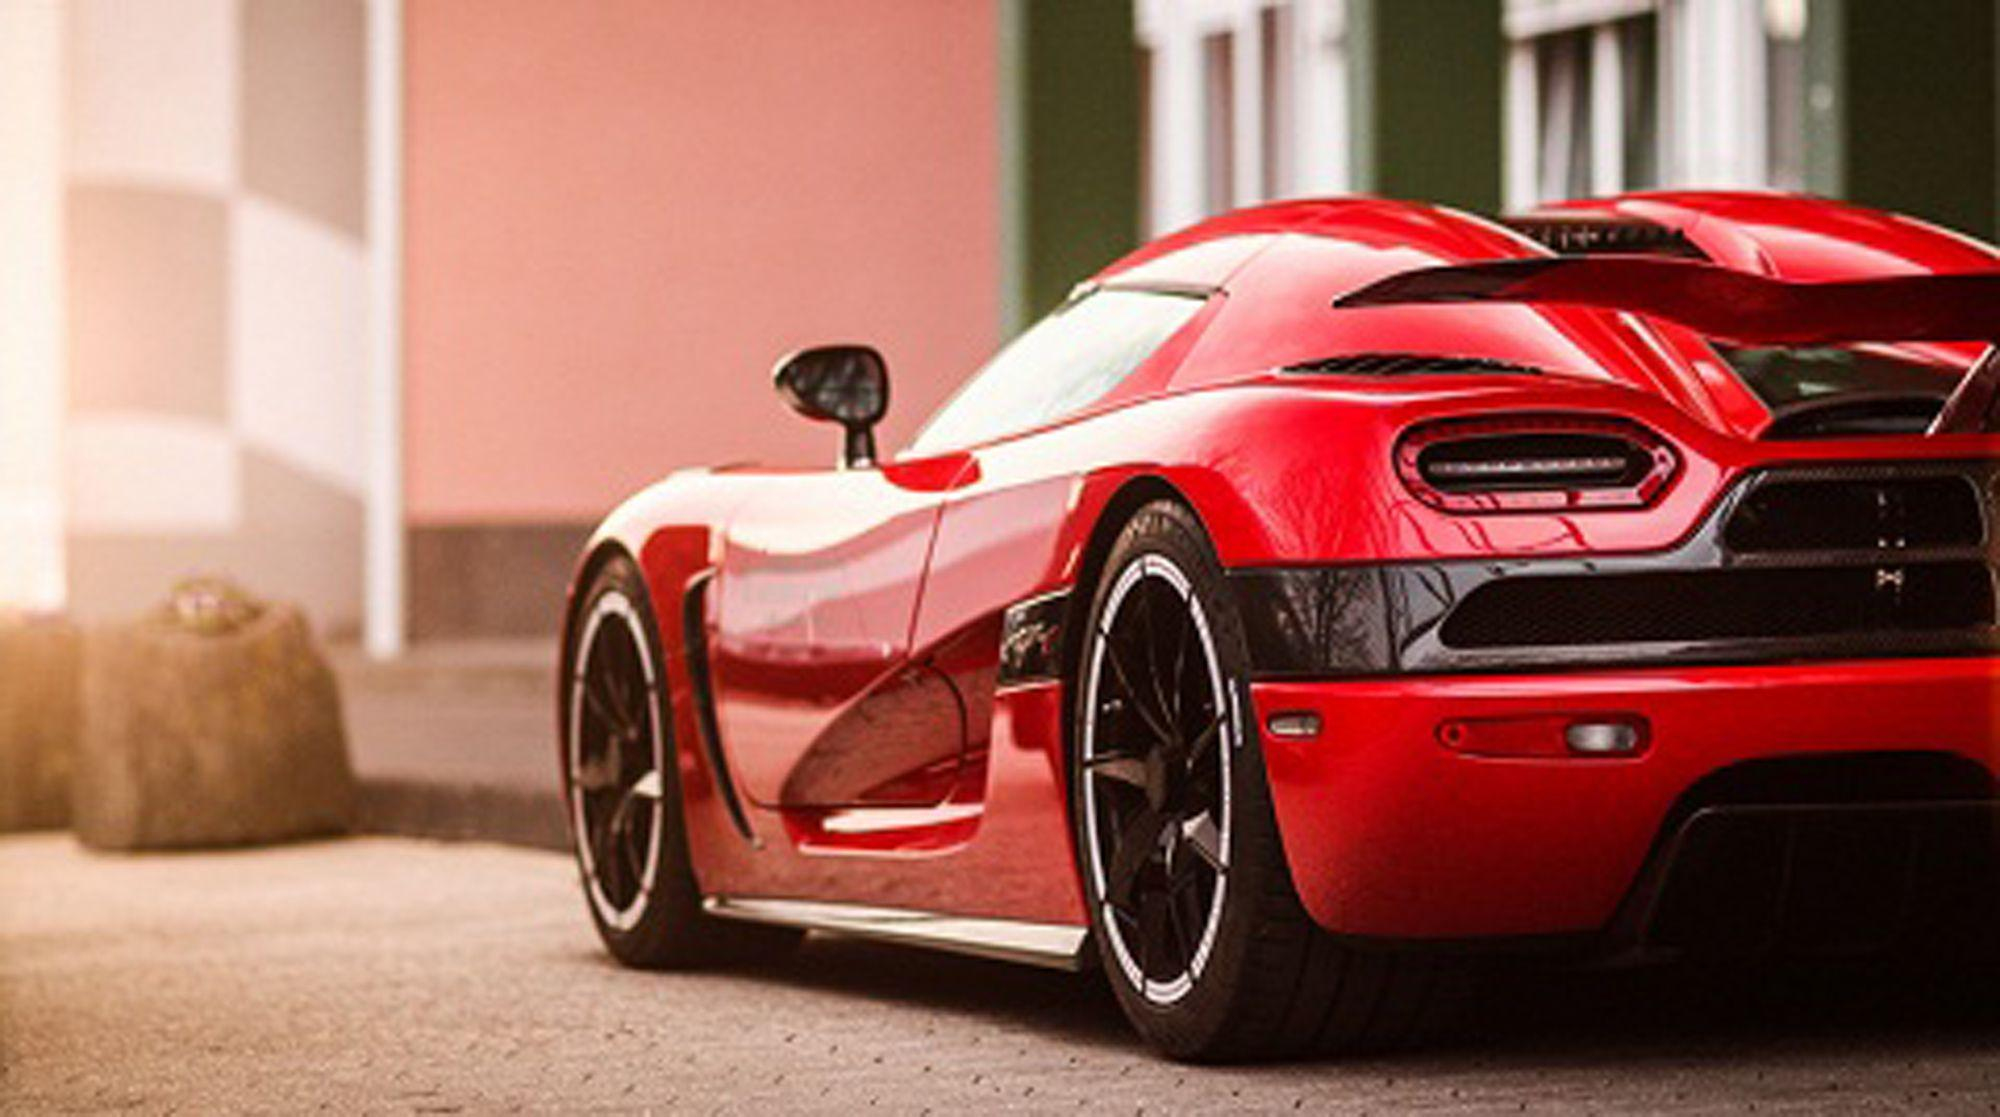 Wallpaper's Collection: «Koenigsegg Agera R Wallpapers»